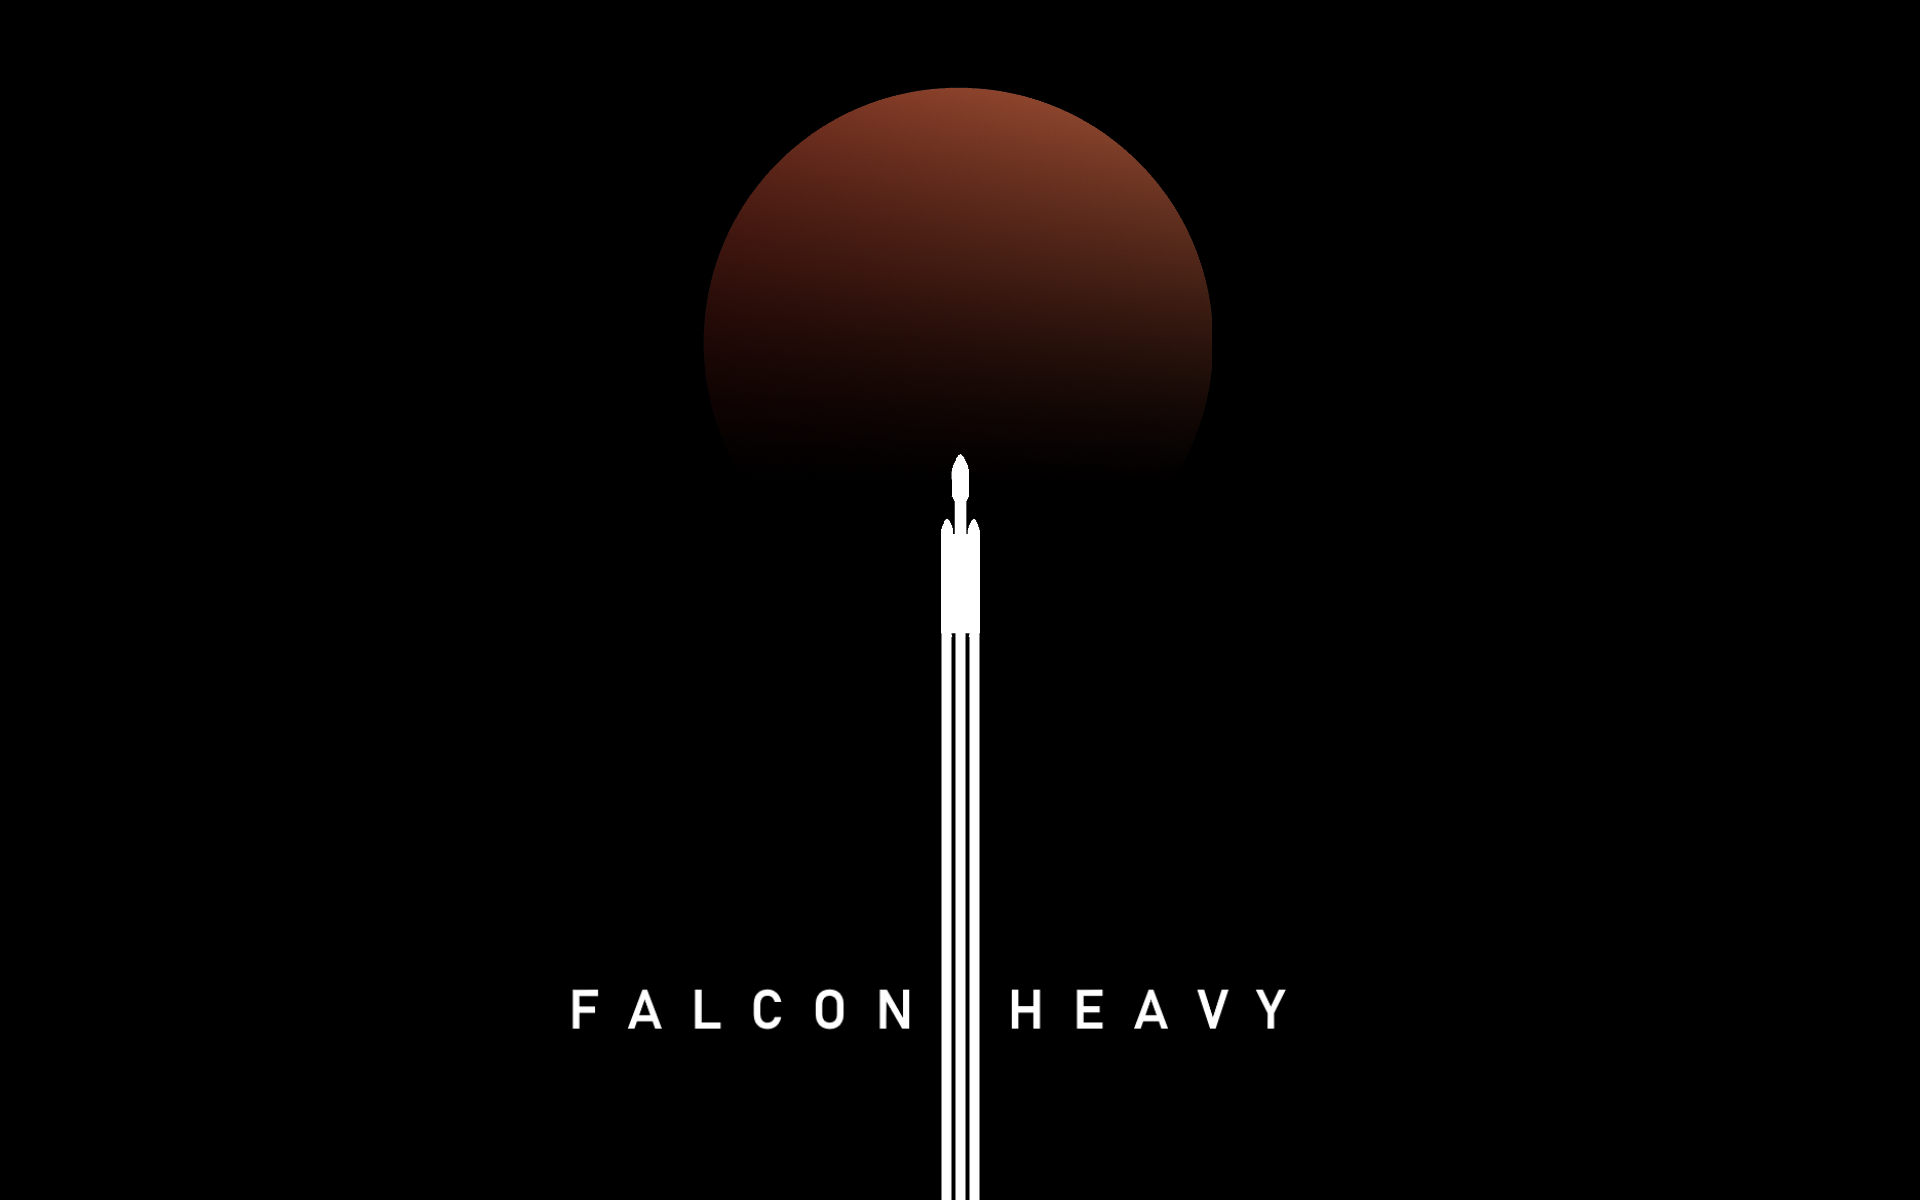 Top 25 16 10 Wallpapers From This Subreddit For Macbooks Falcon Heavy Wallpaper R Wallpaper